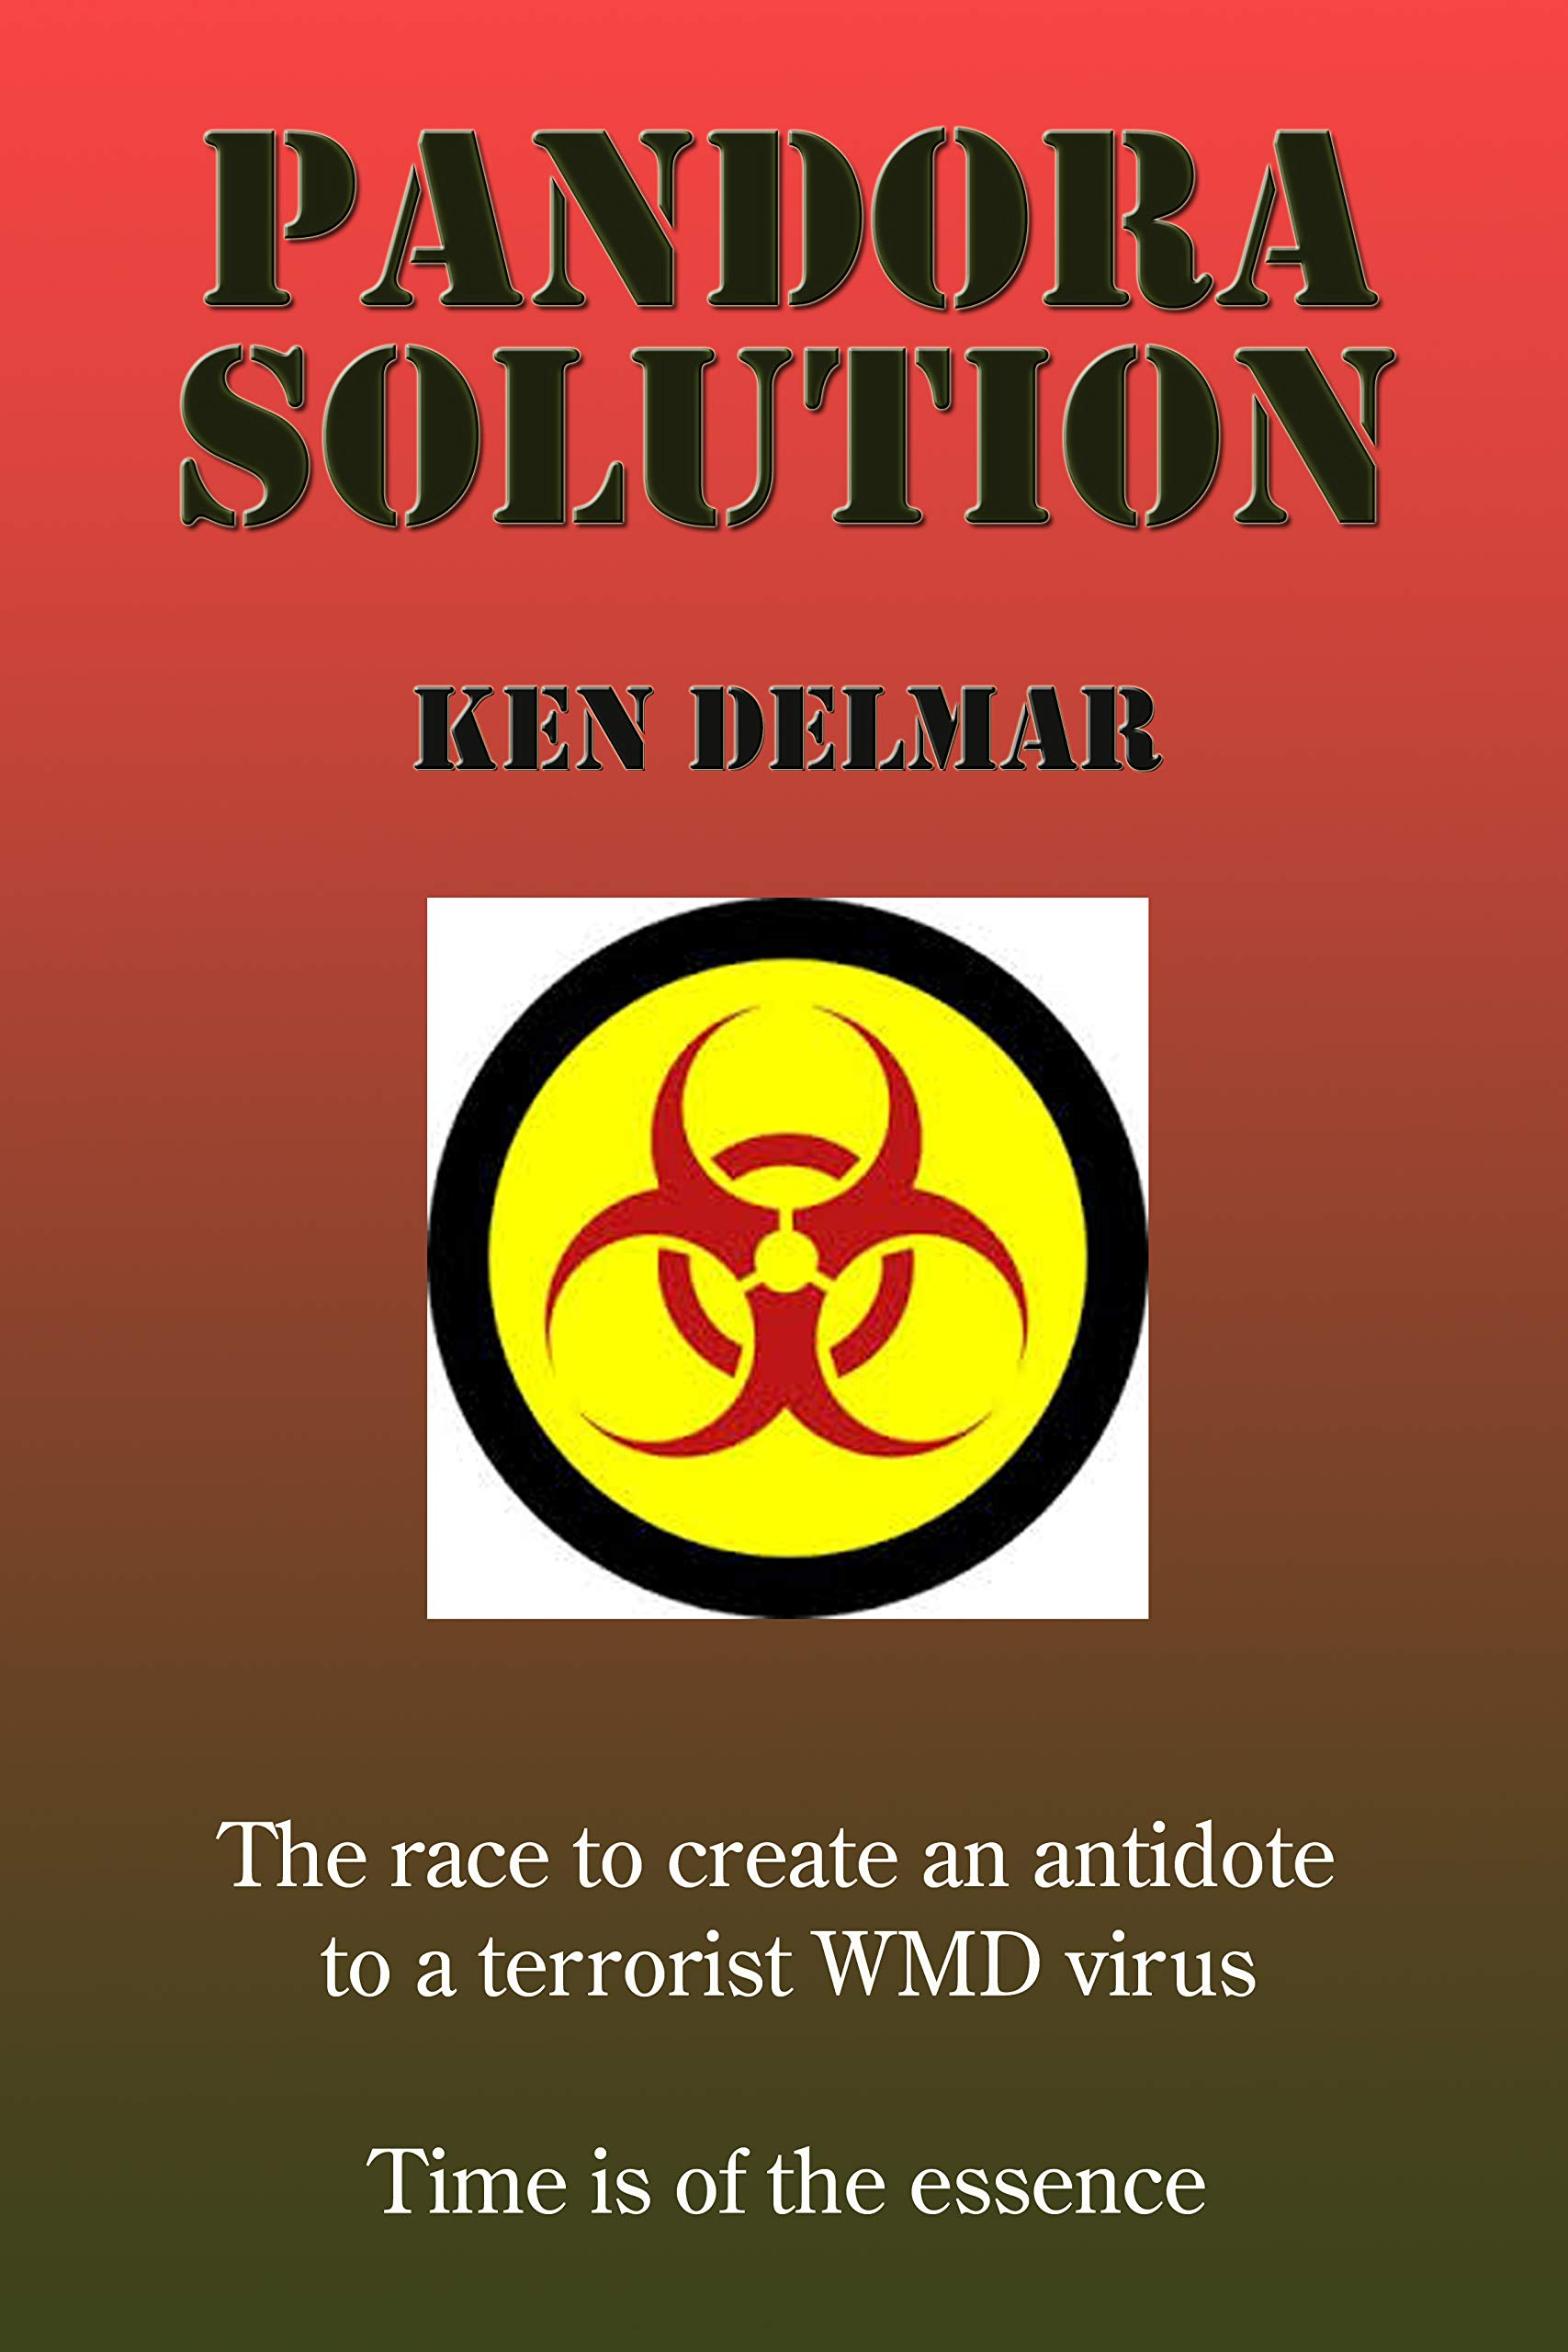 Pandora Solution: The Race To Create An Antidote To A Terrorist WMD Virus